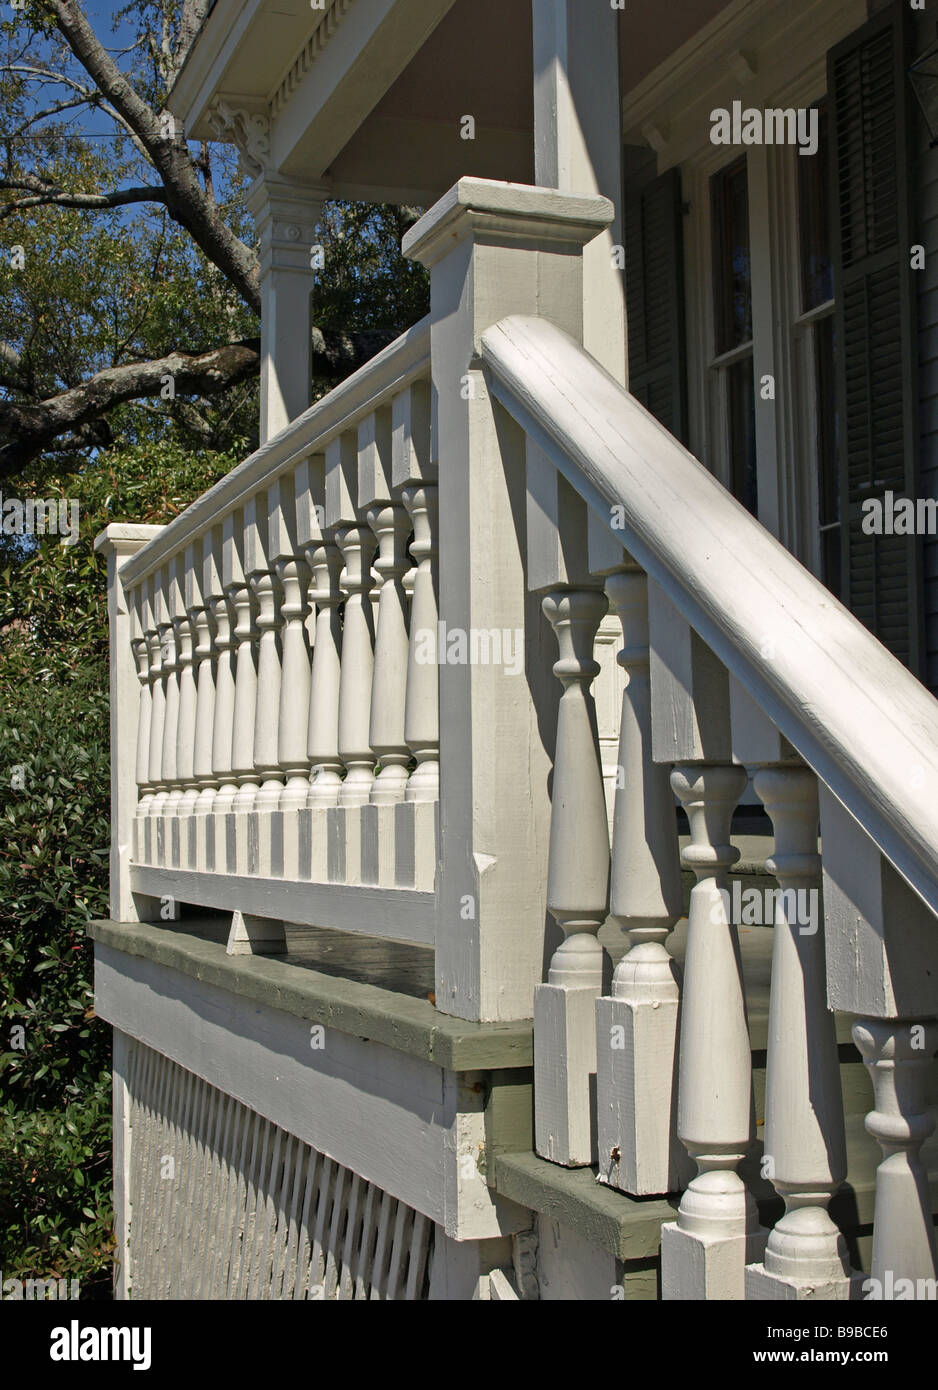 Outside Stairway Banister White Wood Turns Wooden Railing Stairs